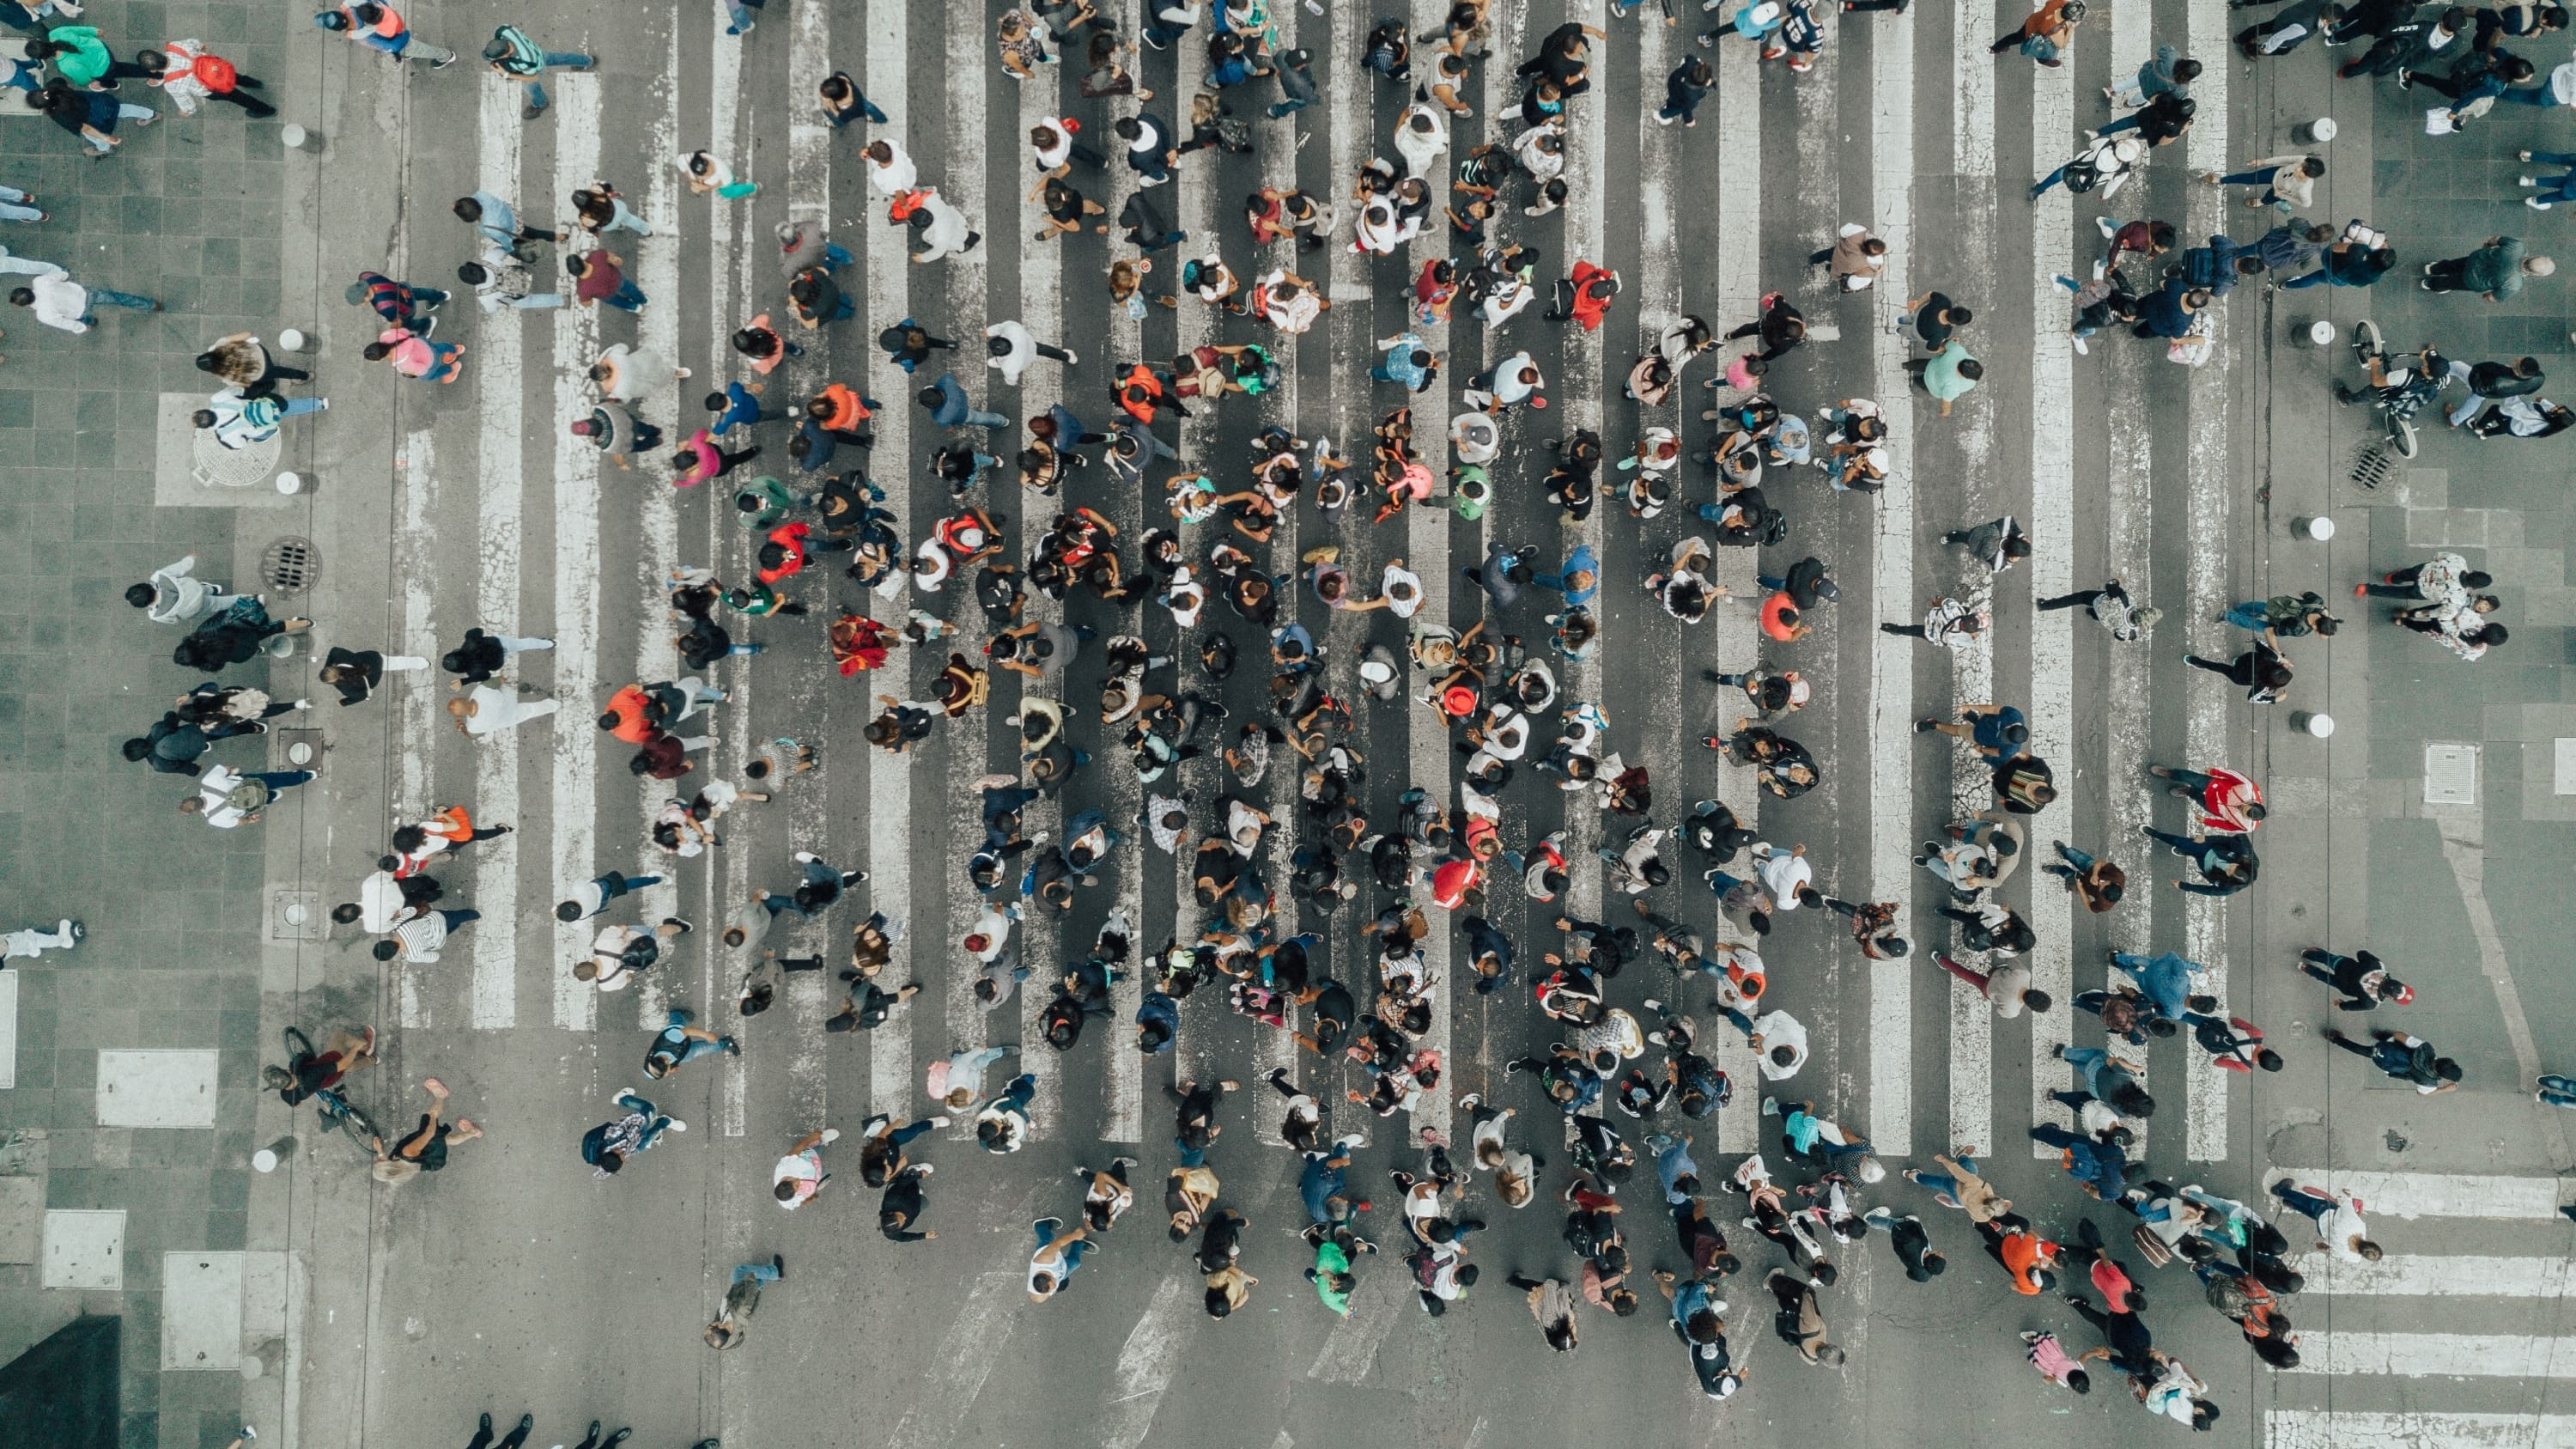 crowded streets, representing the number of people who may have mosaicism